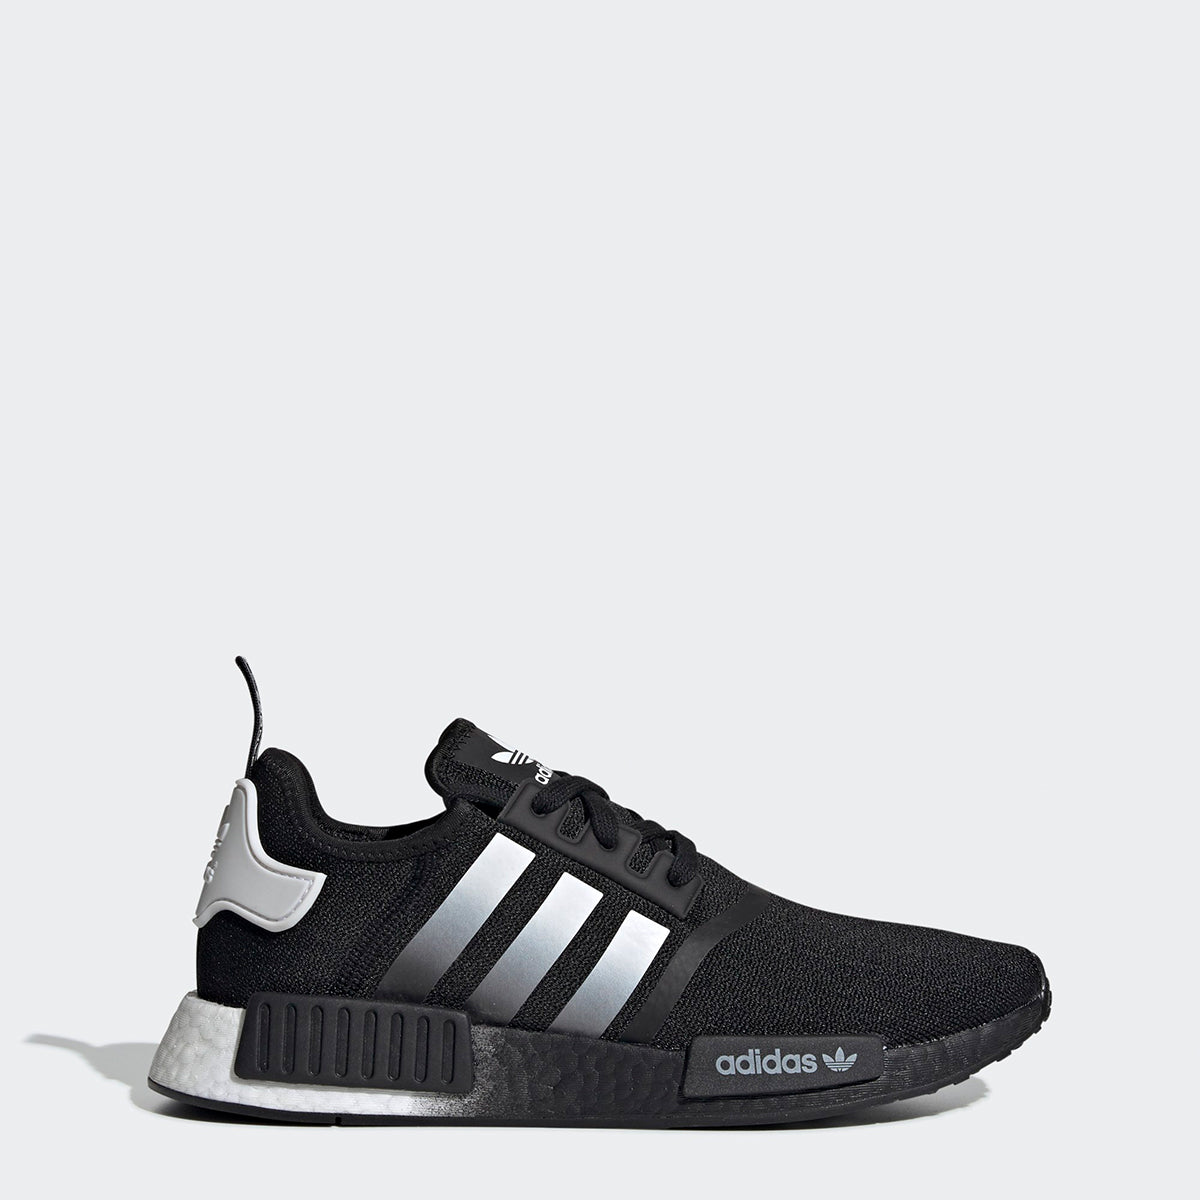 Adidas Nmd R1 Shoes Black Ombre Eg7399 Chicago City Sports